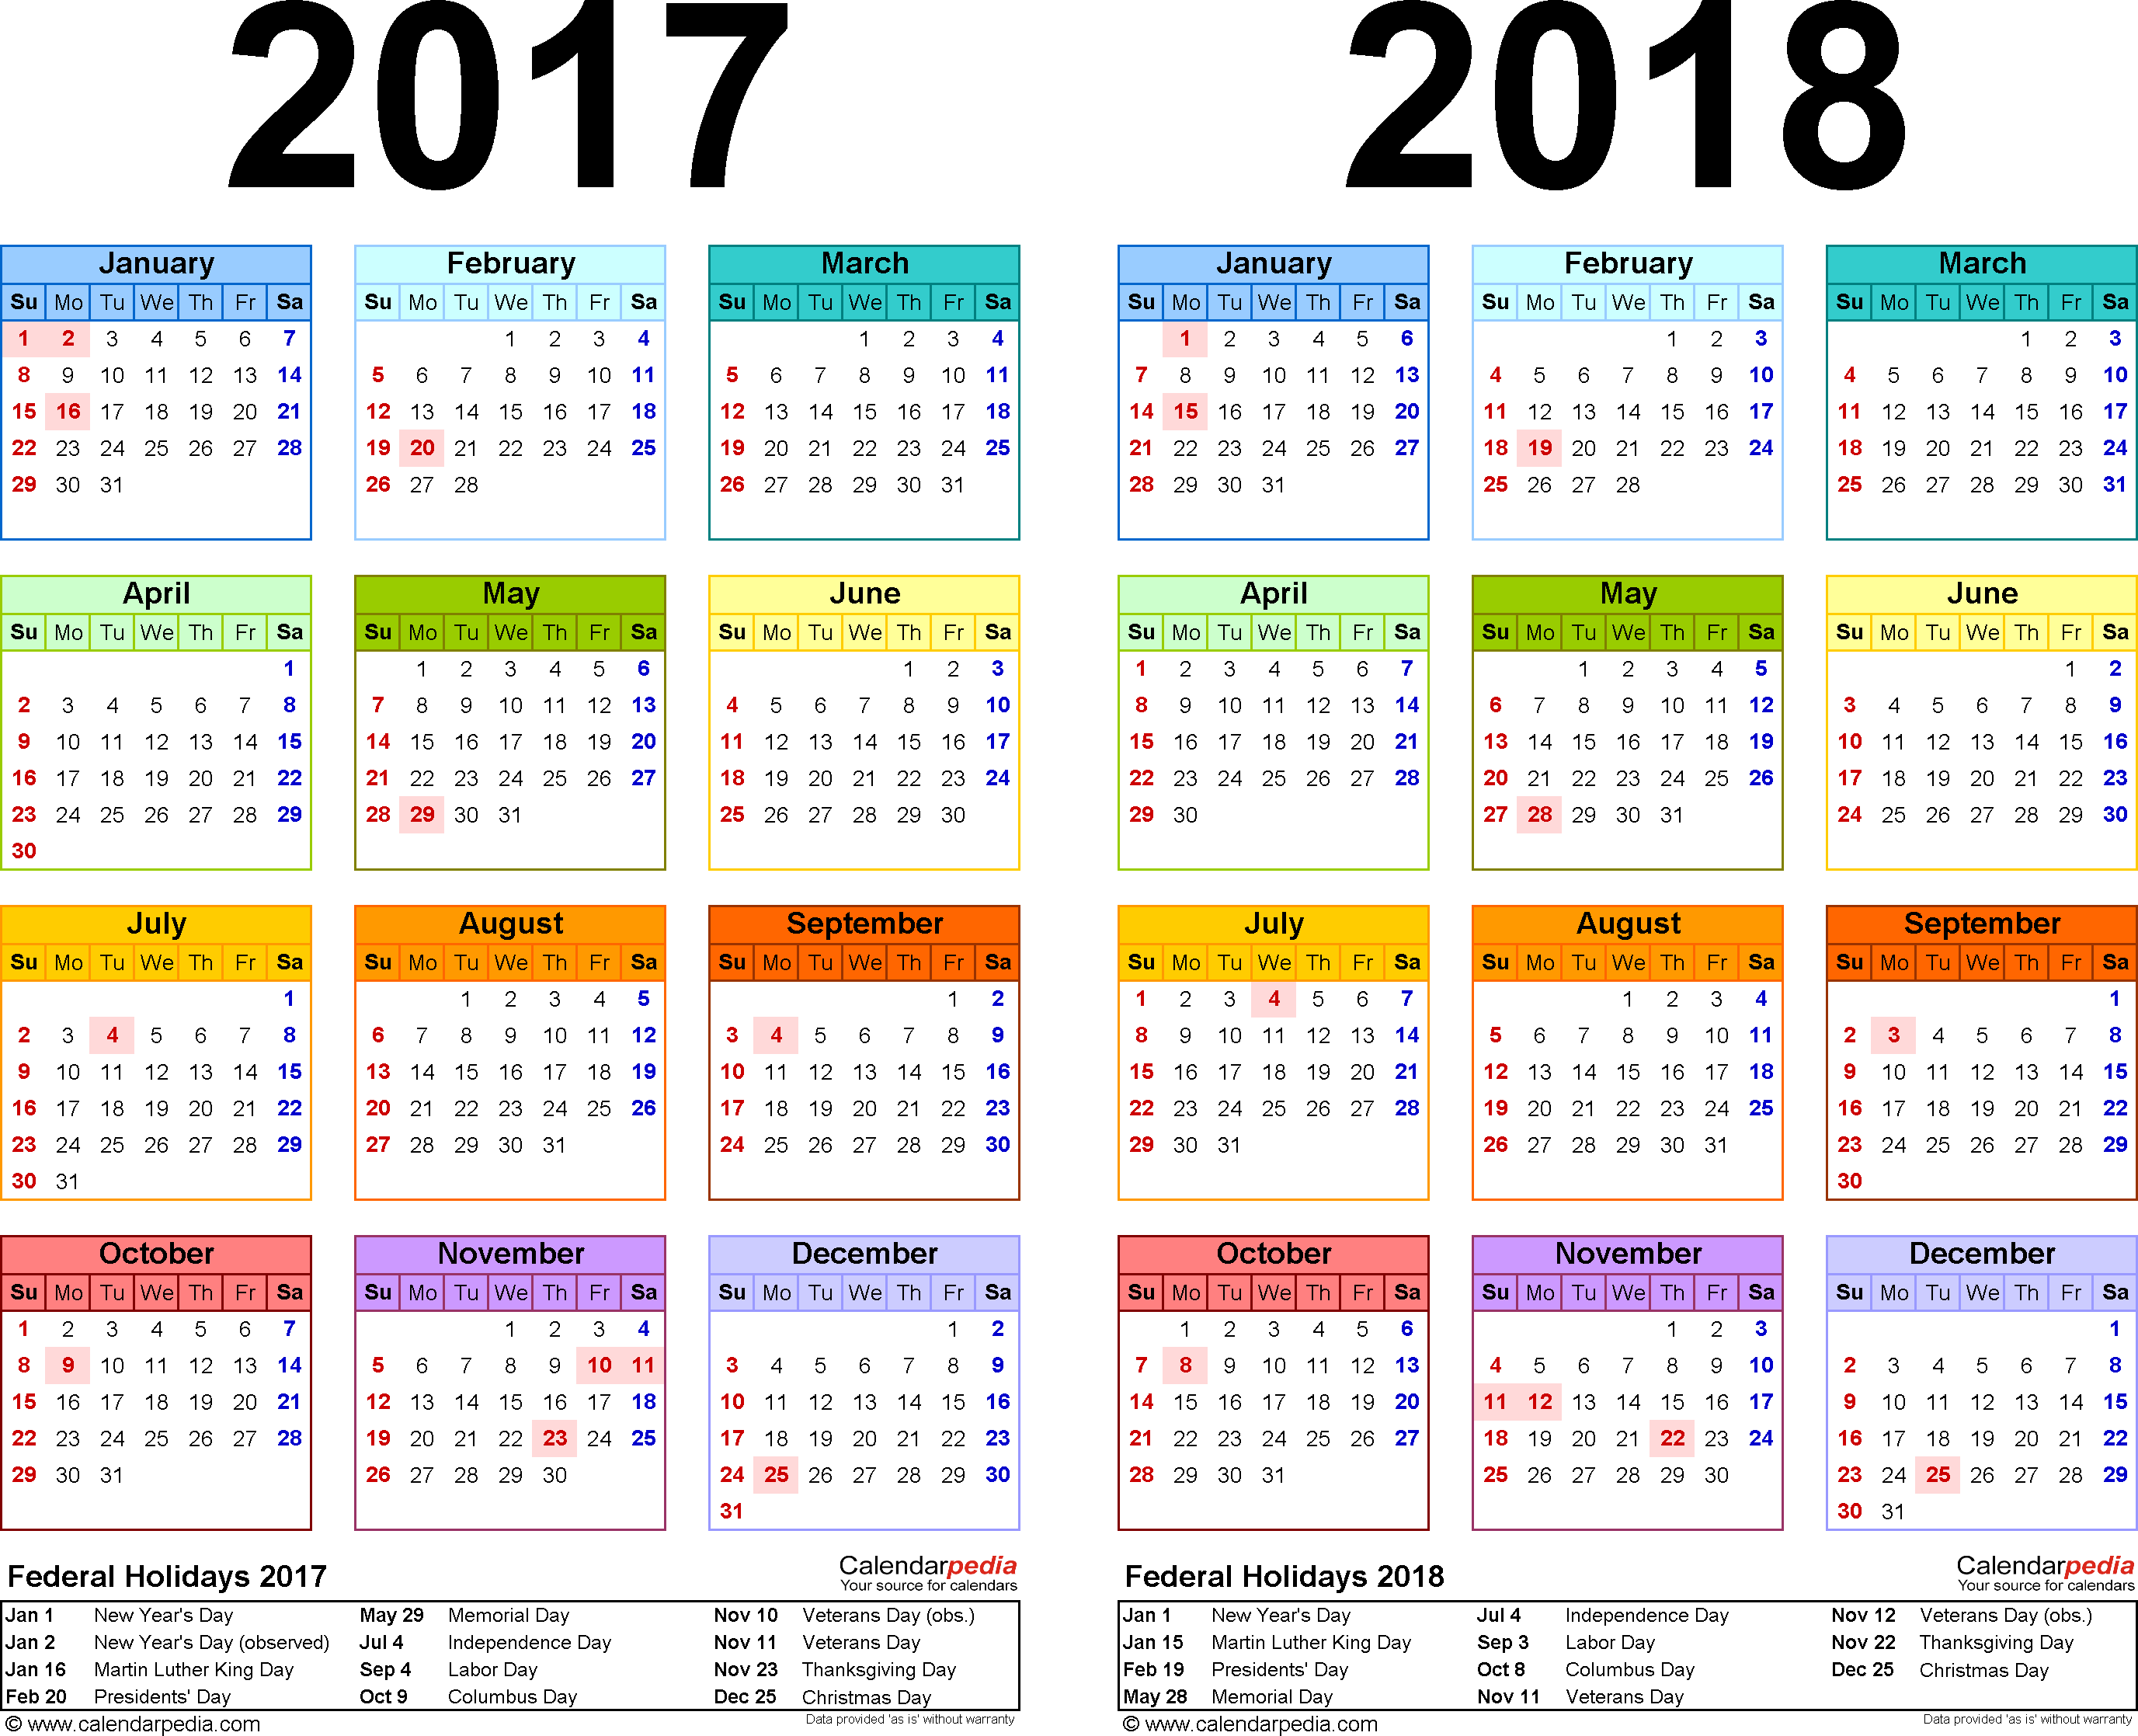 Template 2: Word template for two year calendar 2017/2018 (landscape orientation, 1 page, in color)